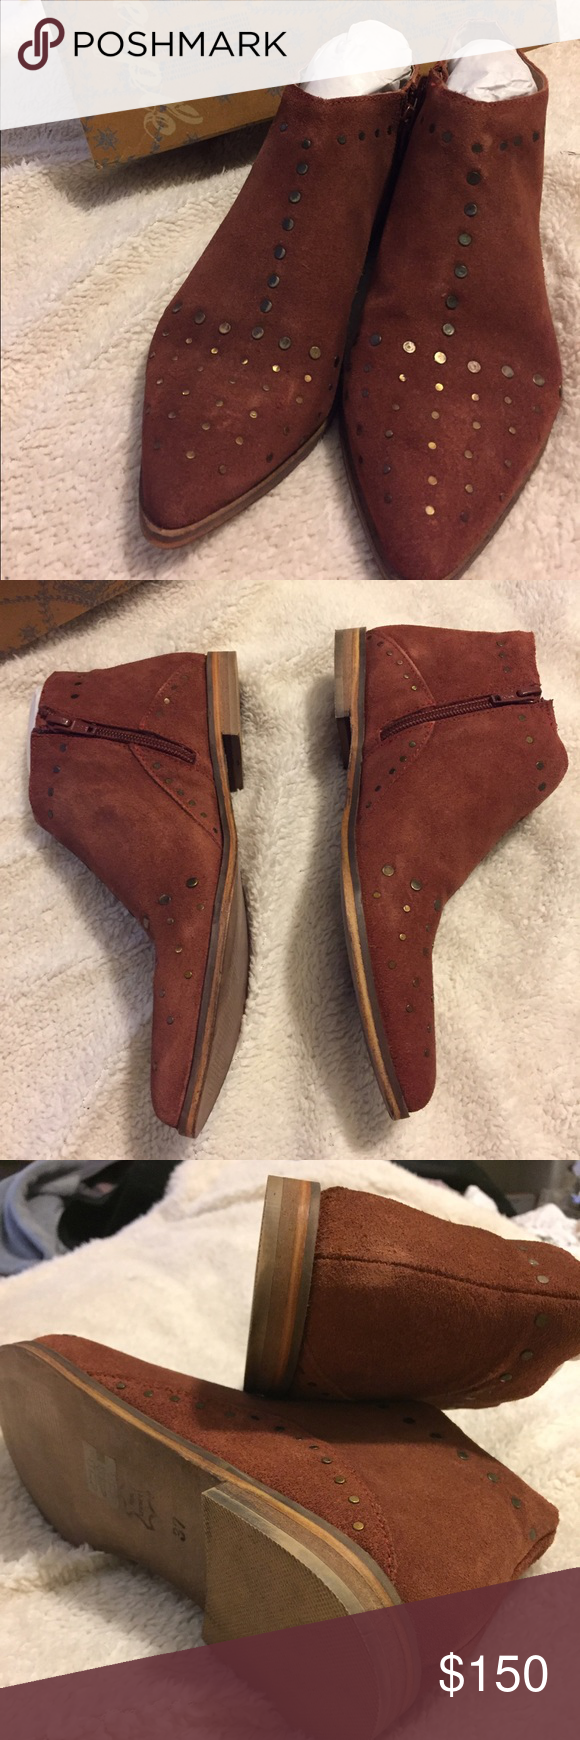 Free People studded ankle boots Brand new ankle booties with red vegan suede, distressed studs, inner side zipper, and pointed toe. Retail: $168.  ❤ Love the item but not the price? Make an offer on a single item or a bundle! Free People Shoes Ankle Boots & Booties